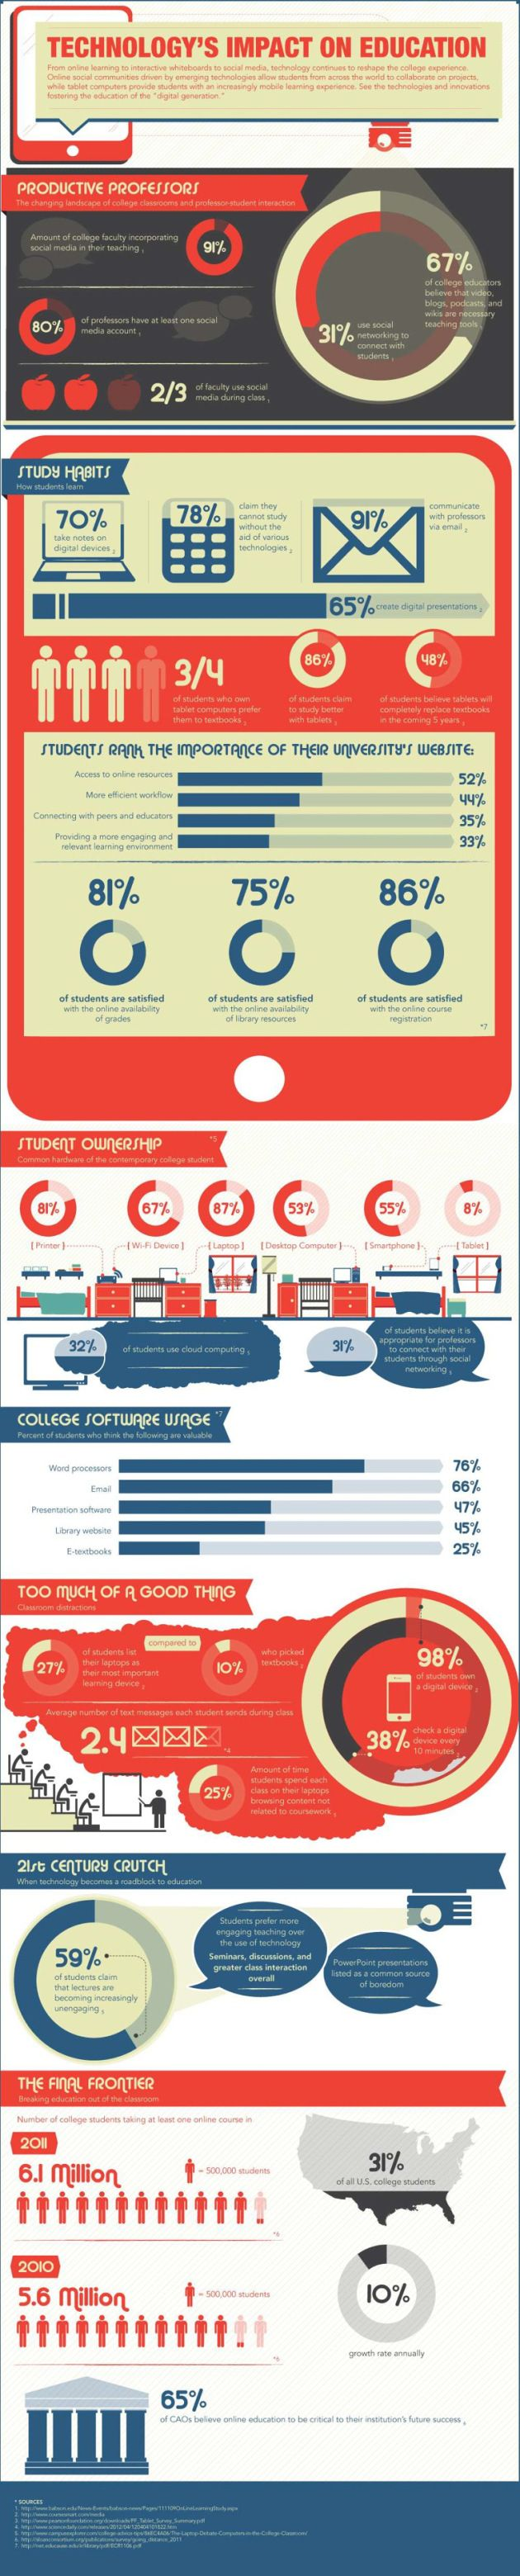 What Is Technology's Impact On Education? #HigherEd #EdTech #infographic